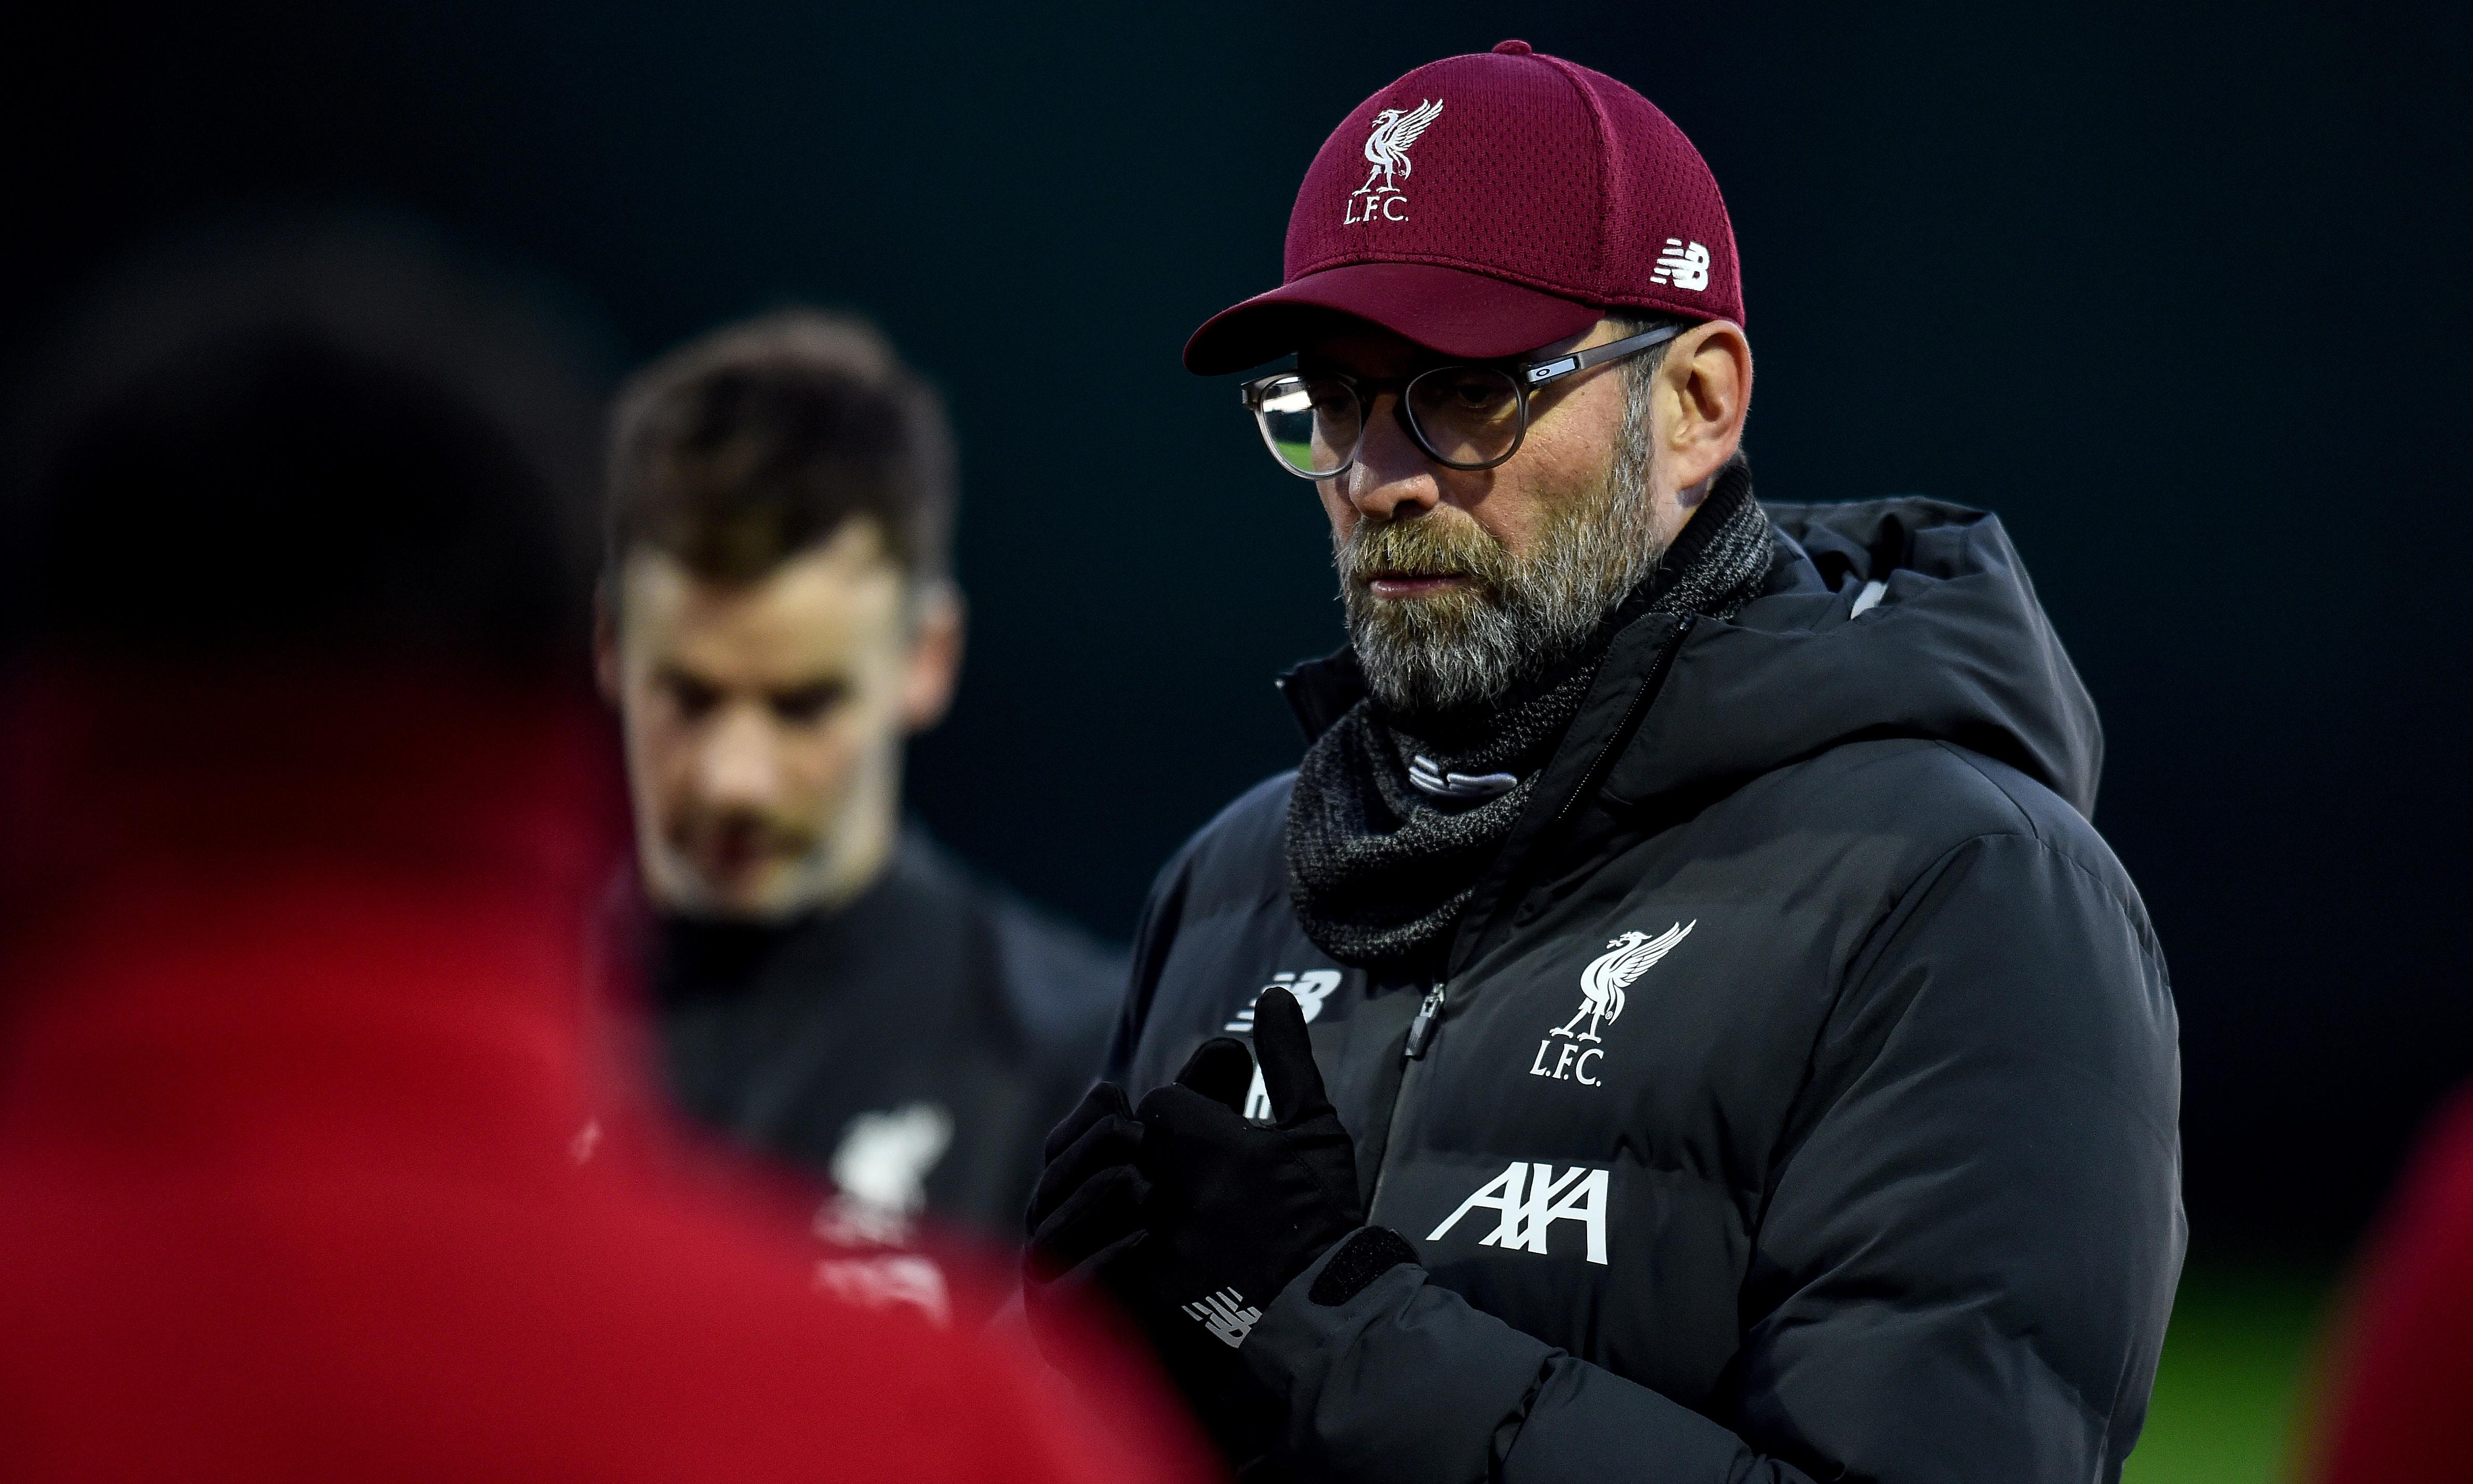 Klopp ready for Liverpool's 'biggest game' against Manchester United